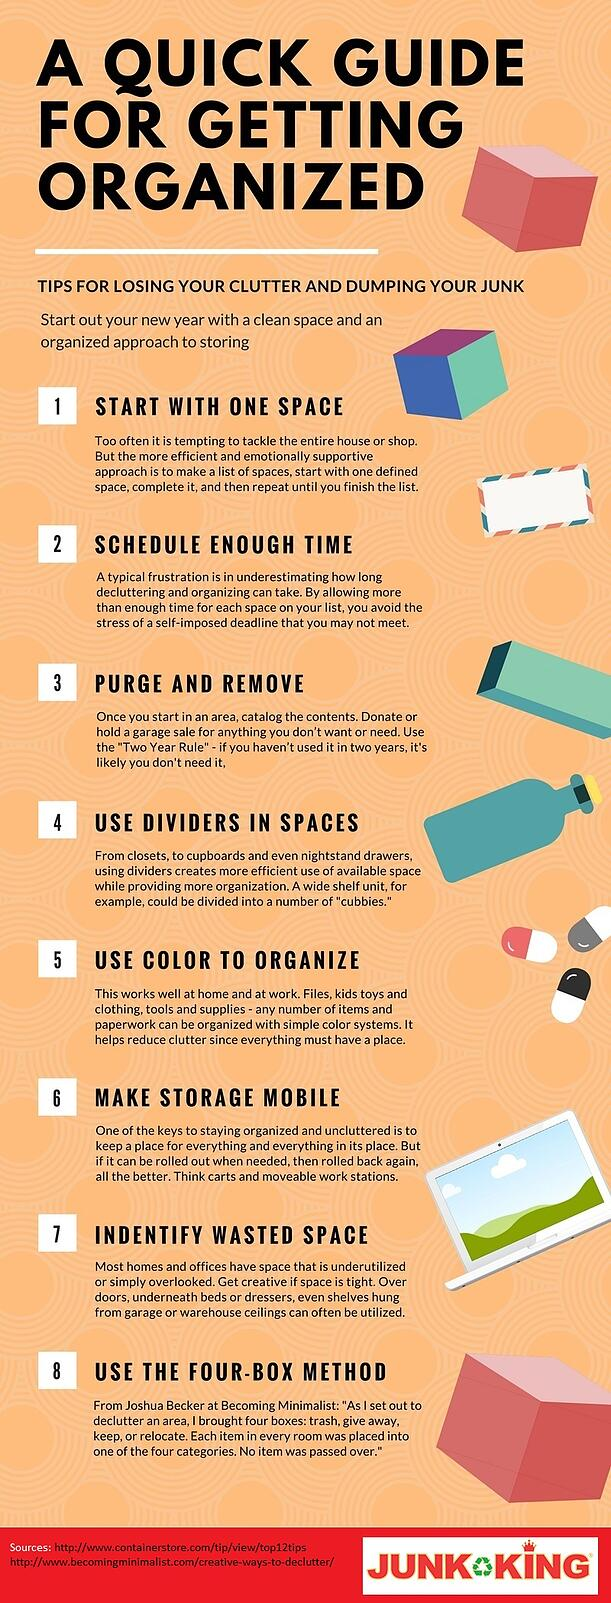 a_quick_guide_for_getting_organized-2